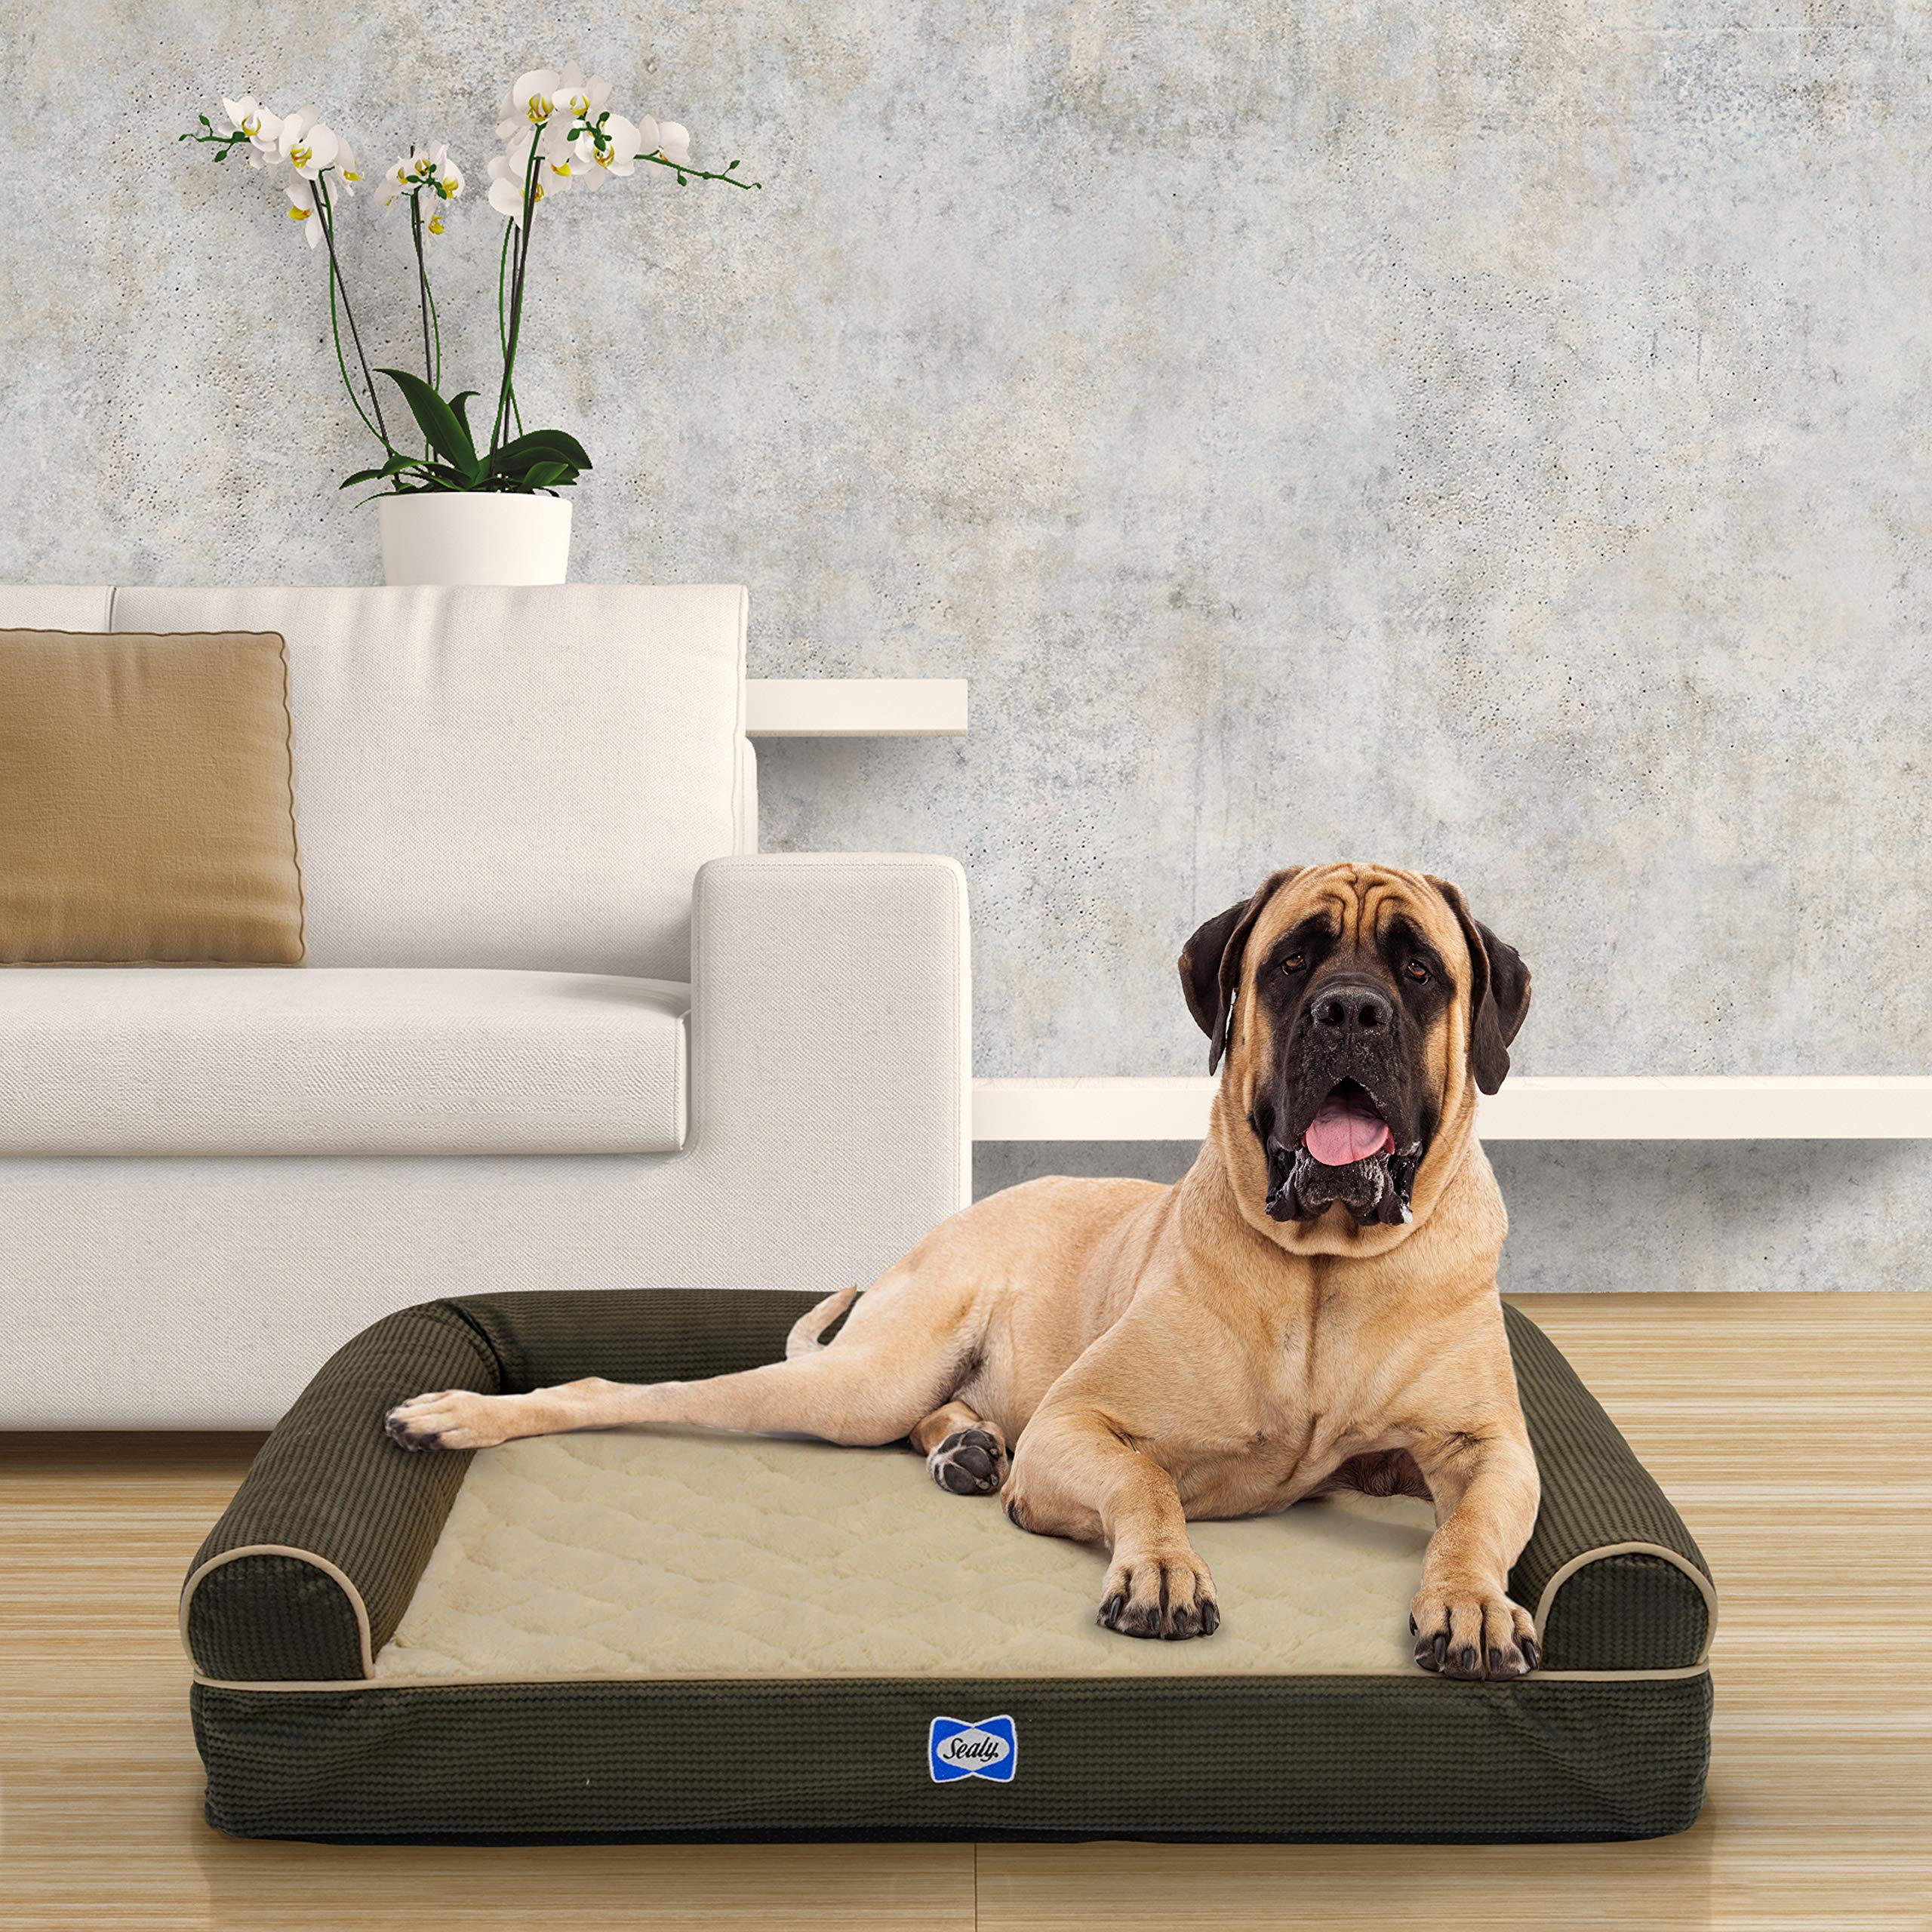 Sealy Ultra Plush Sofa-Style Bolster Dog Bed Brown, X-Large Jumbo - Orthopedic Foam Pet Bed with Machine Washable Plush Cover